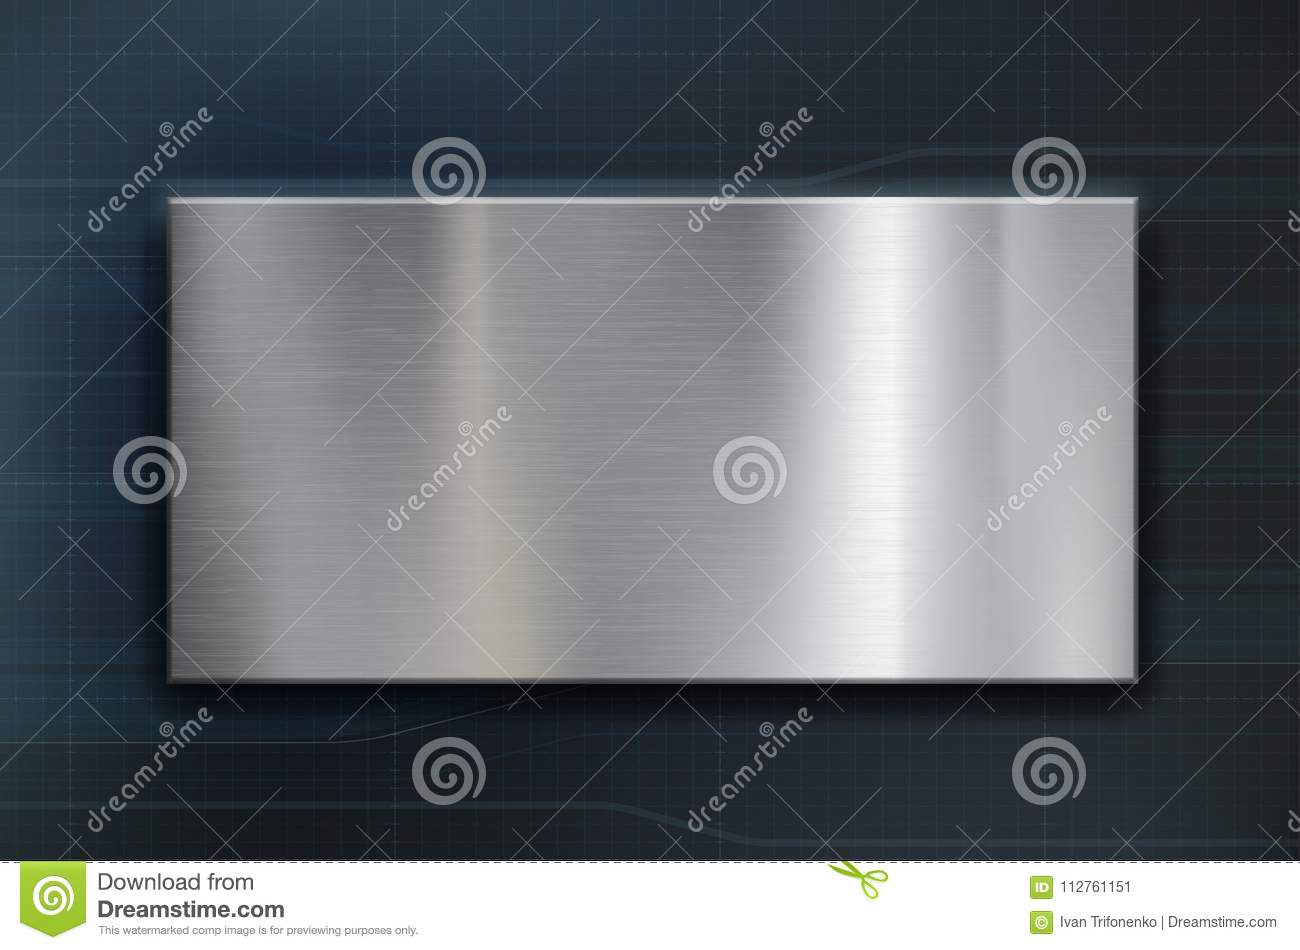 Technology background with a metal plate